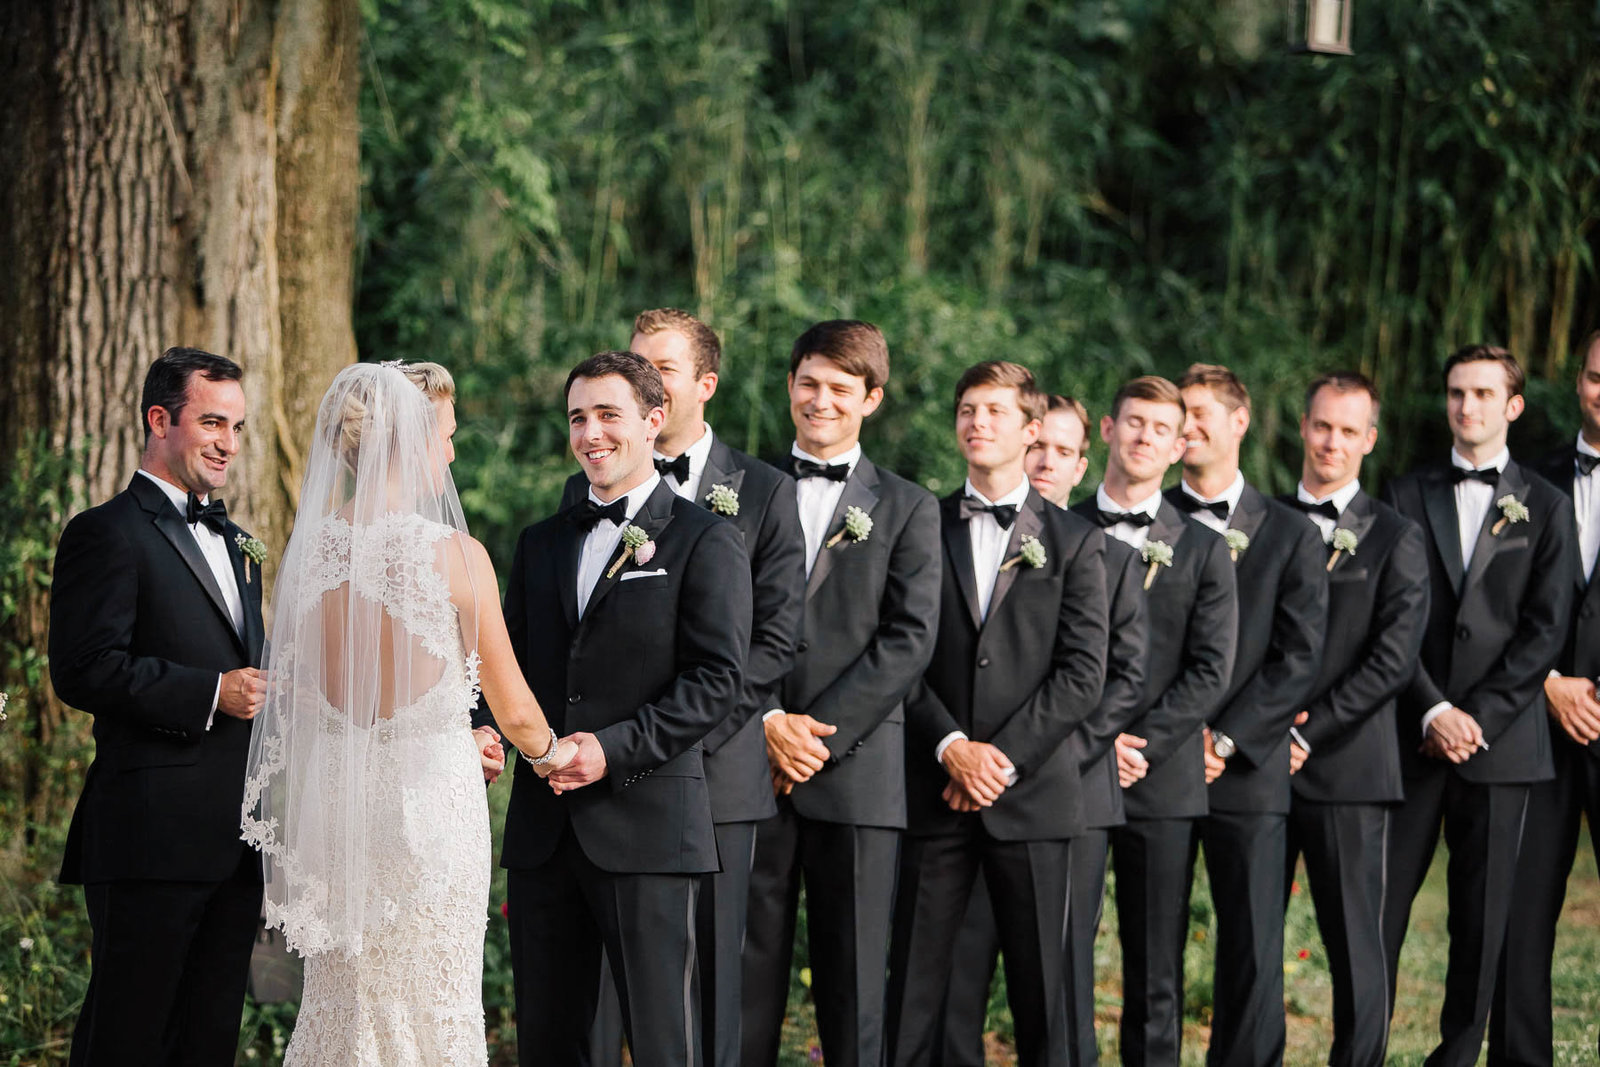 ceremony-magnolia-plantation-charleston-sc-lowcountry-wedding-kate-timbers-photography2185